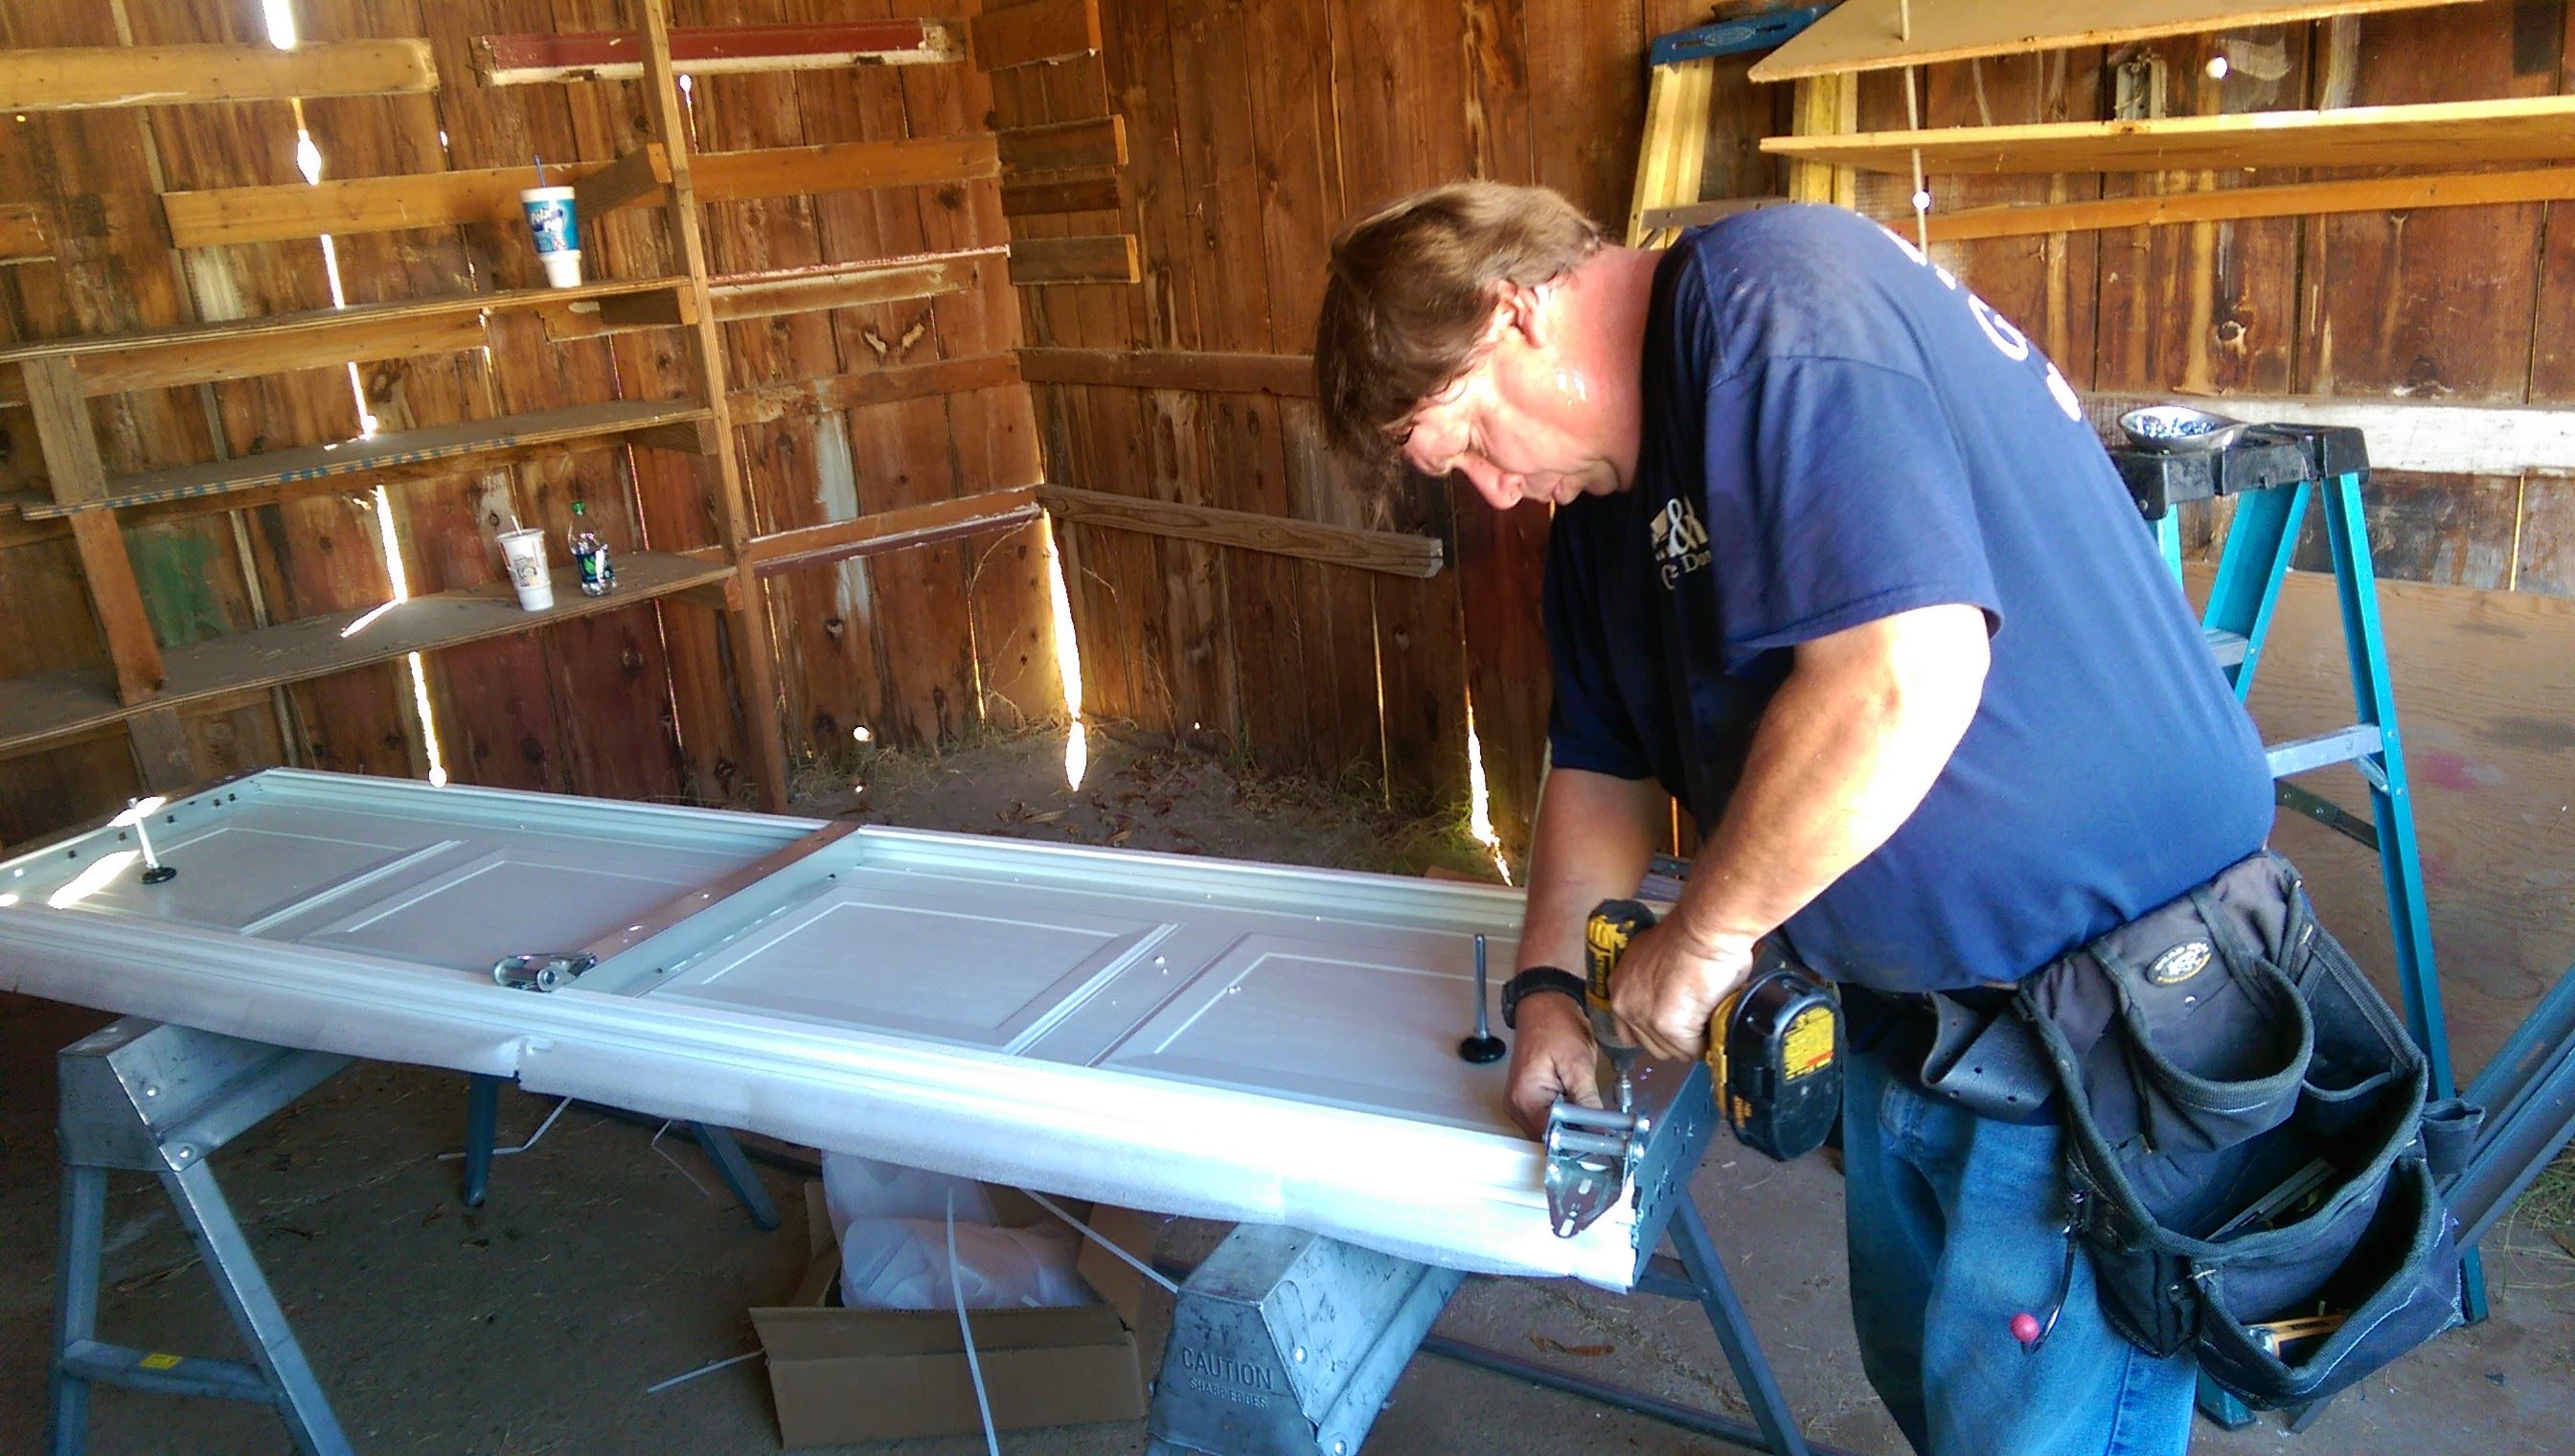 arizona installers garage tempe phoenix door doors az lovely creative repair studio unusual